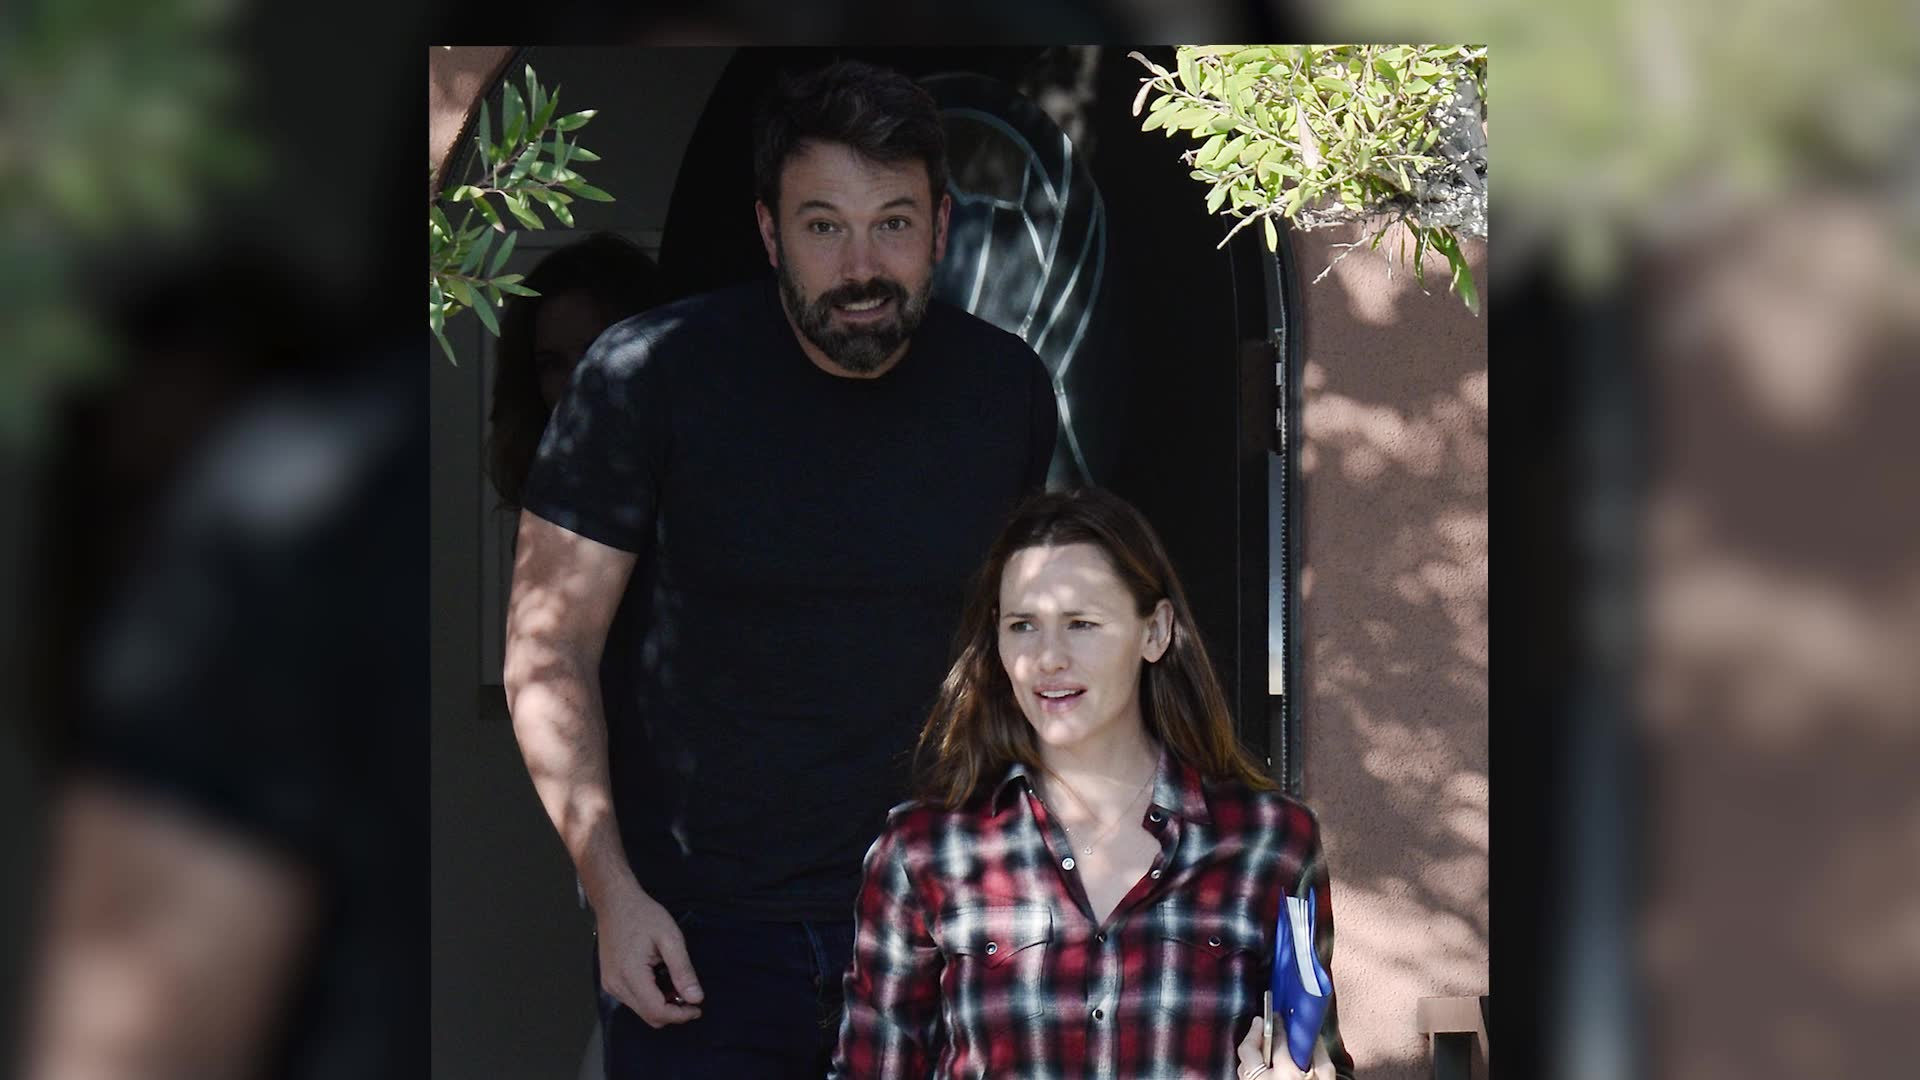 Ben Affleck and Jennifer Garner Happily Attend Family Counseling